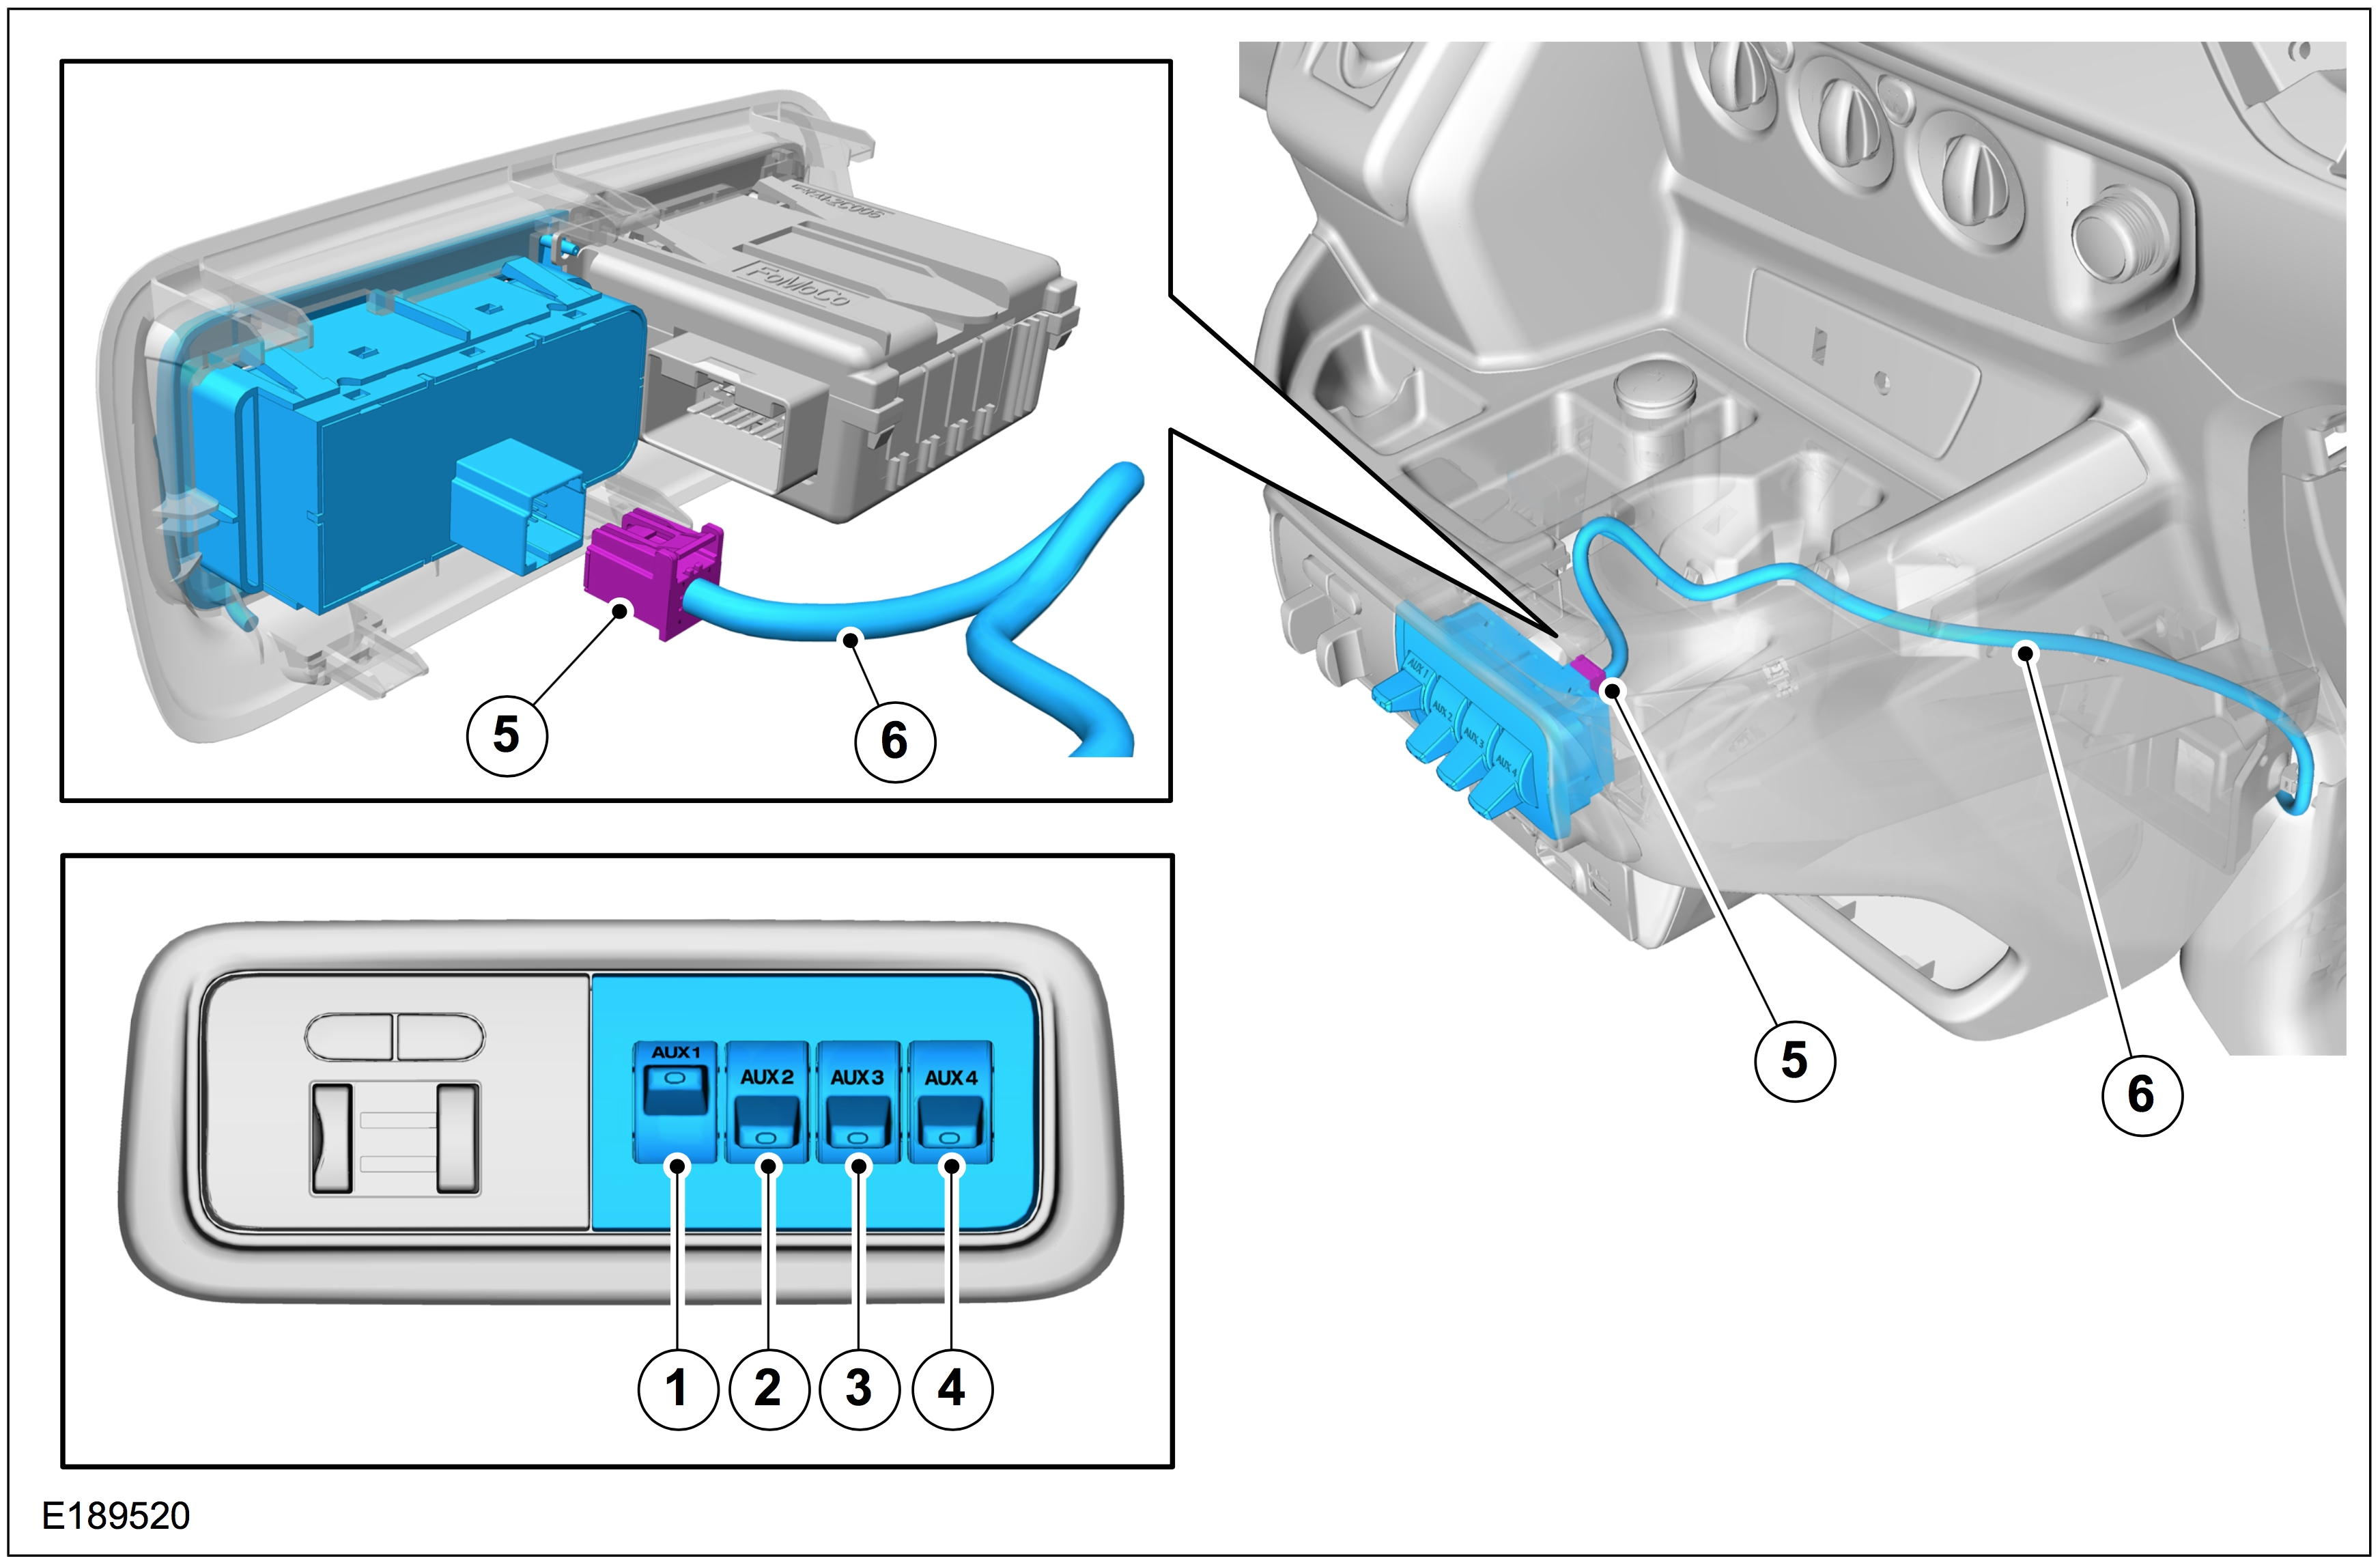 ford fleet wiring diagrams fender stratocaster wire diagram transit upfitter switches morey 39s in